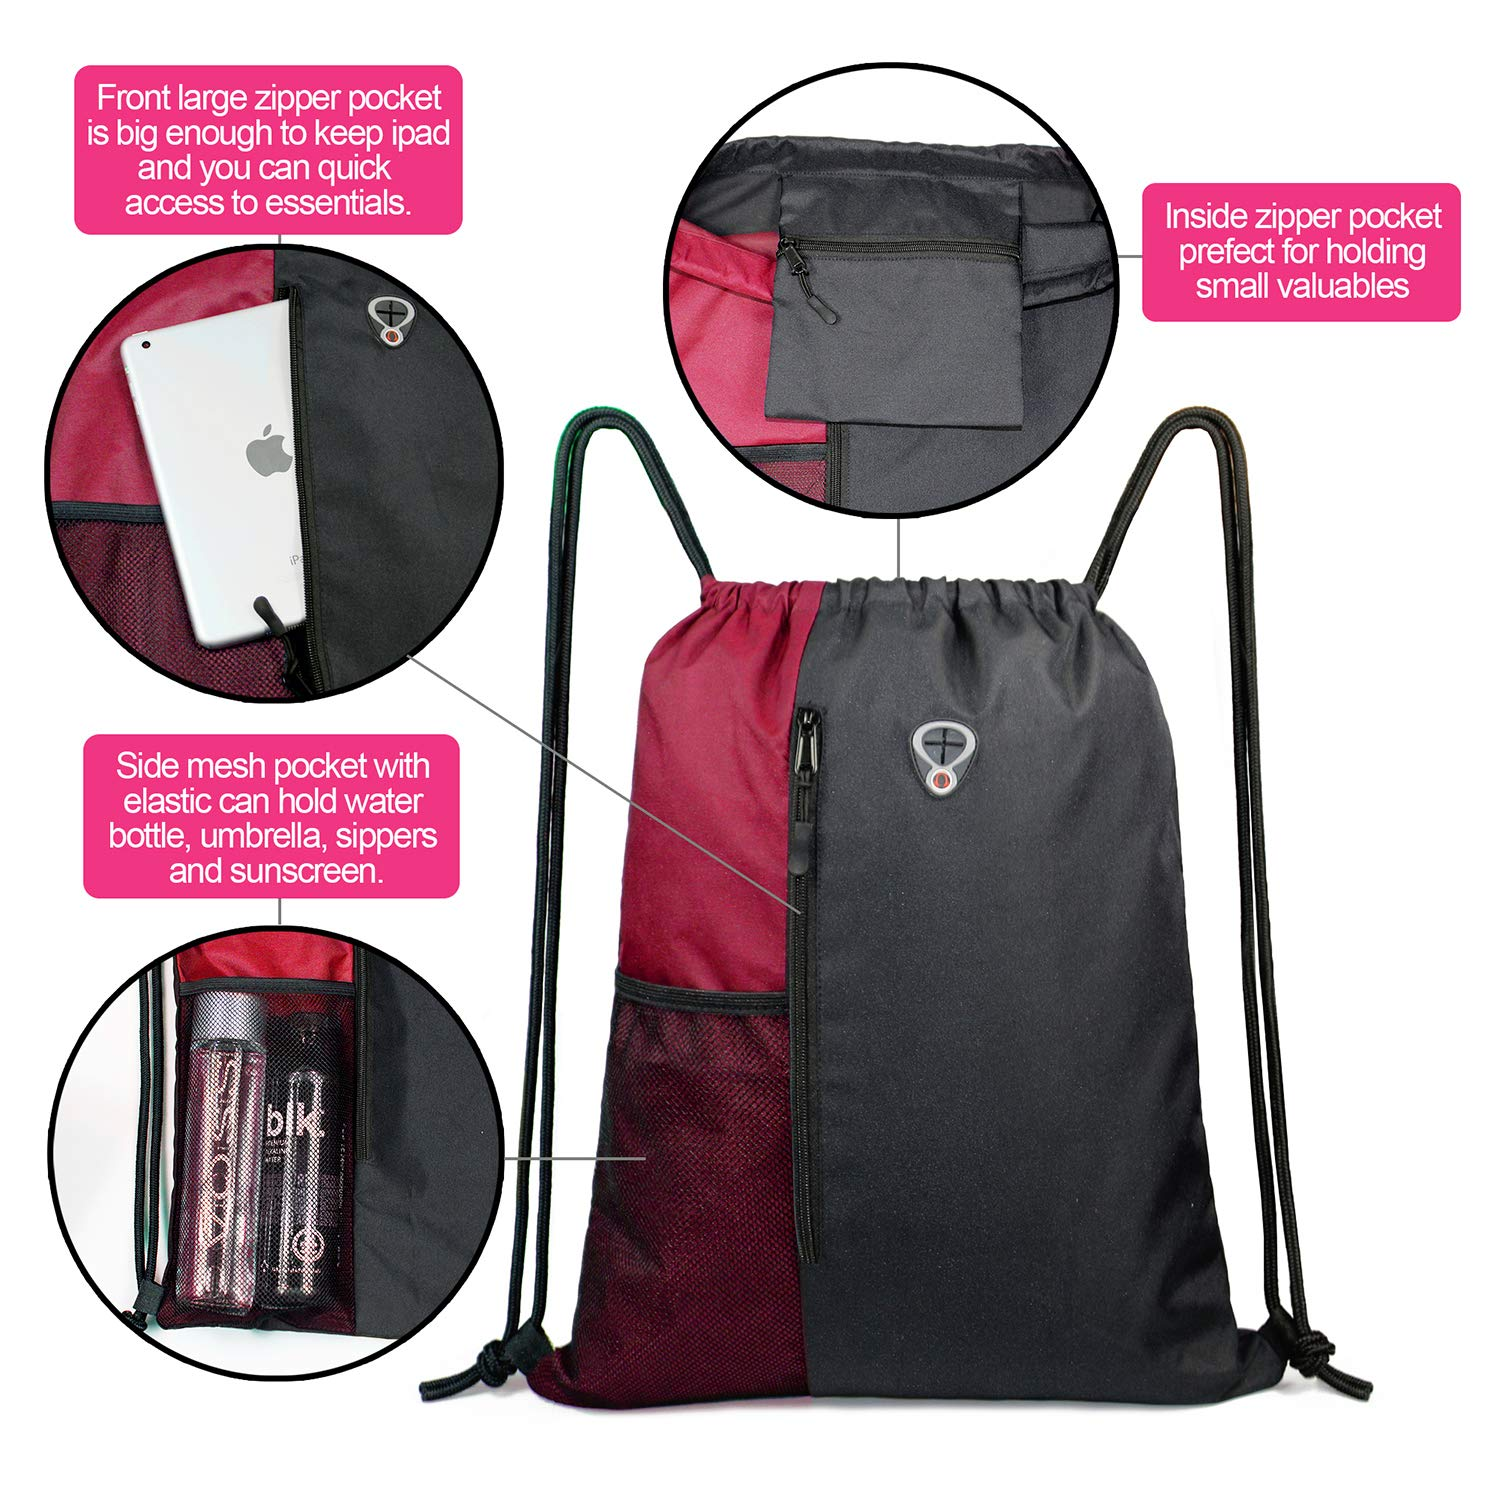 Vertical House Stripes Large Drawstring Backpack Sports Athletic Gym Cinch Sack String Storage Bags for Hiking Travel Beach